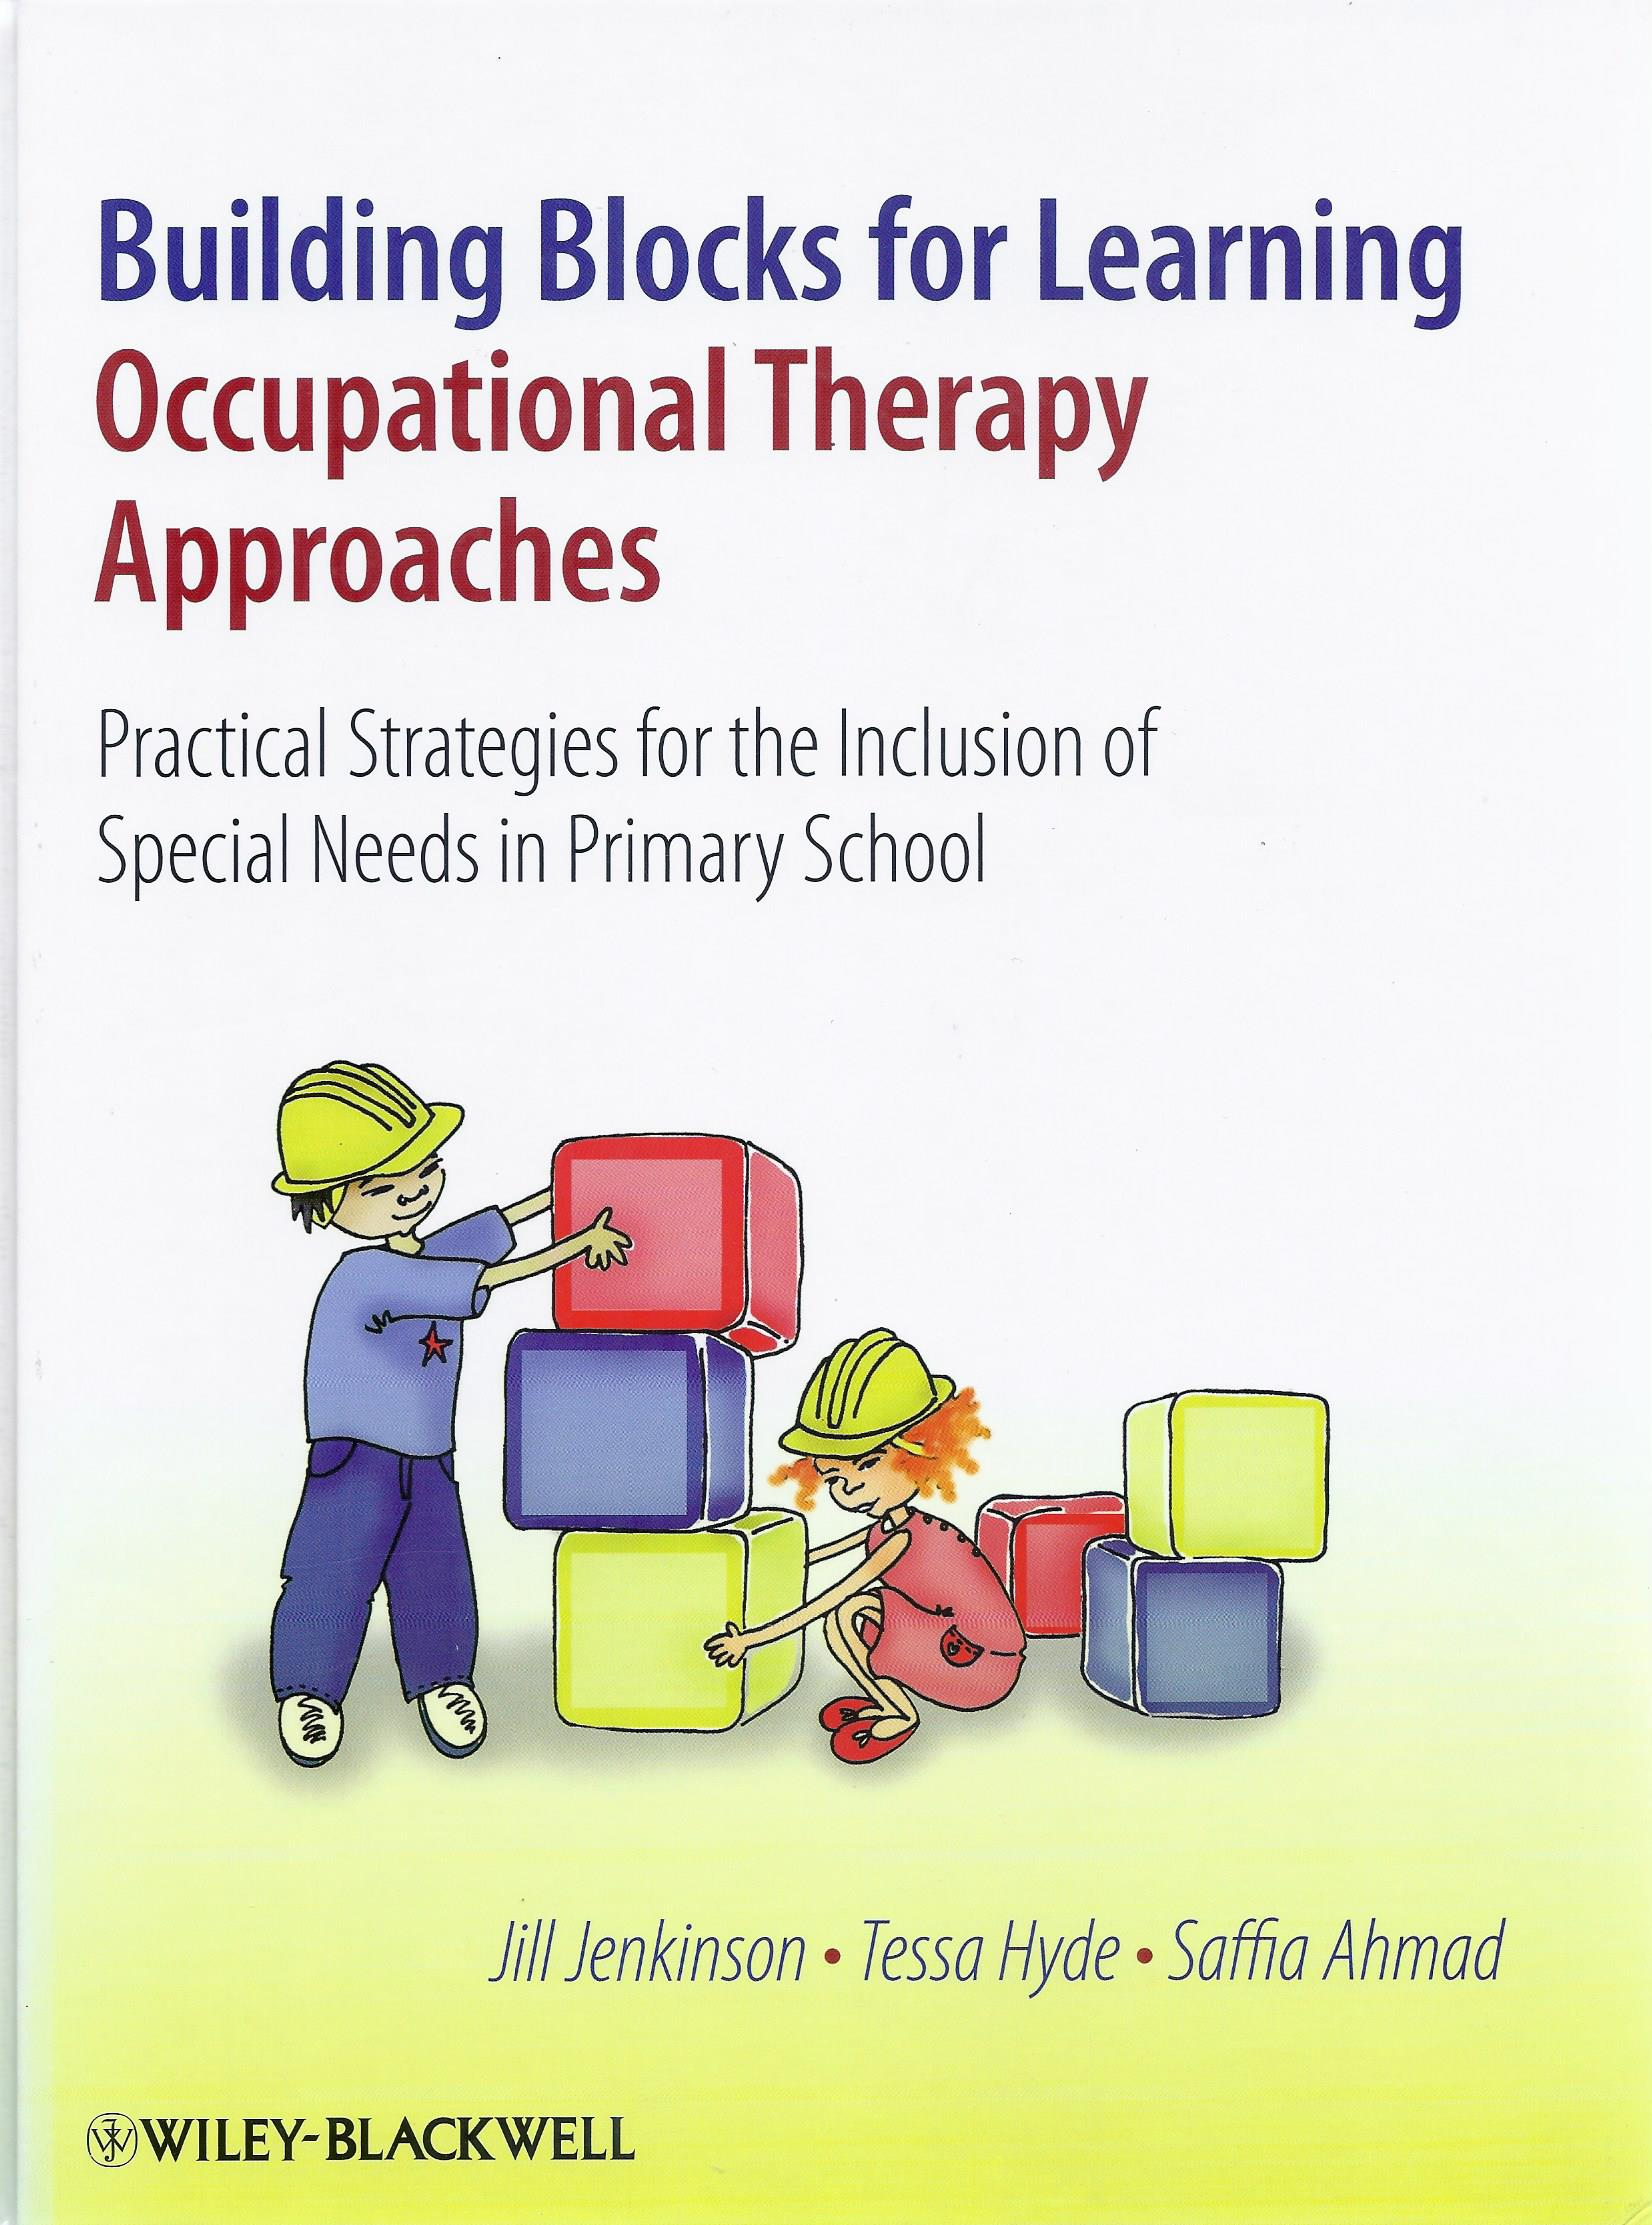 Building Blocks for Learning Occupational Therapy Approaches-0